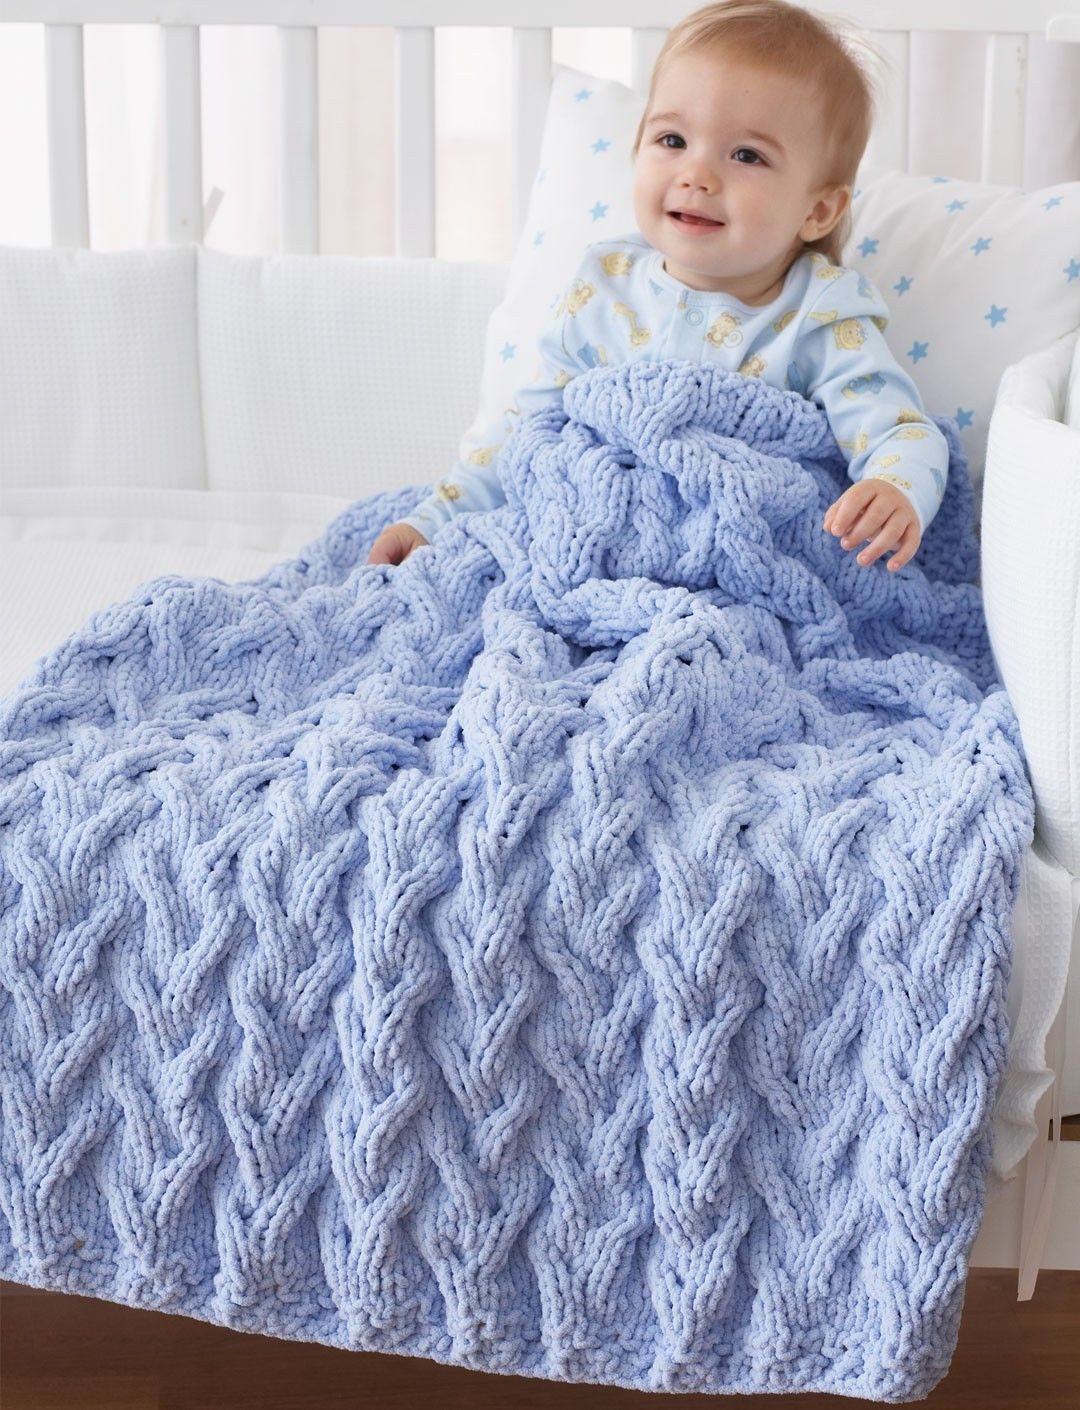 Knitted Baby Blanket Unique Cable Afghan Knitting Patterns Of Amazing 46 Pictures Knitted Baby Blanket